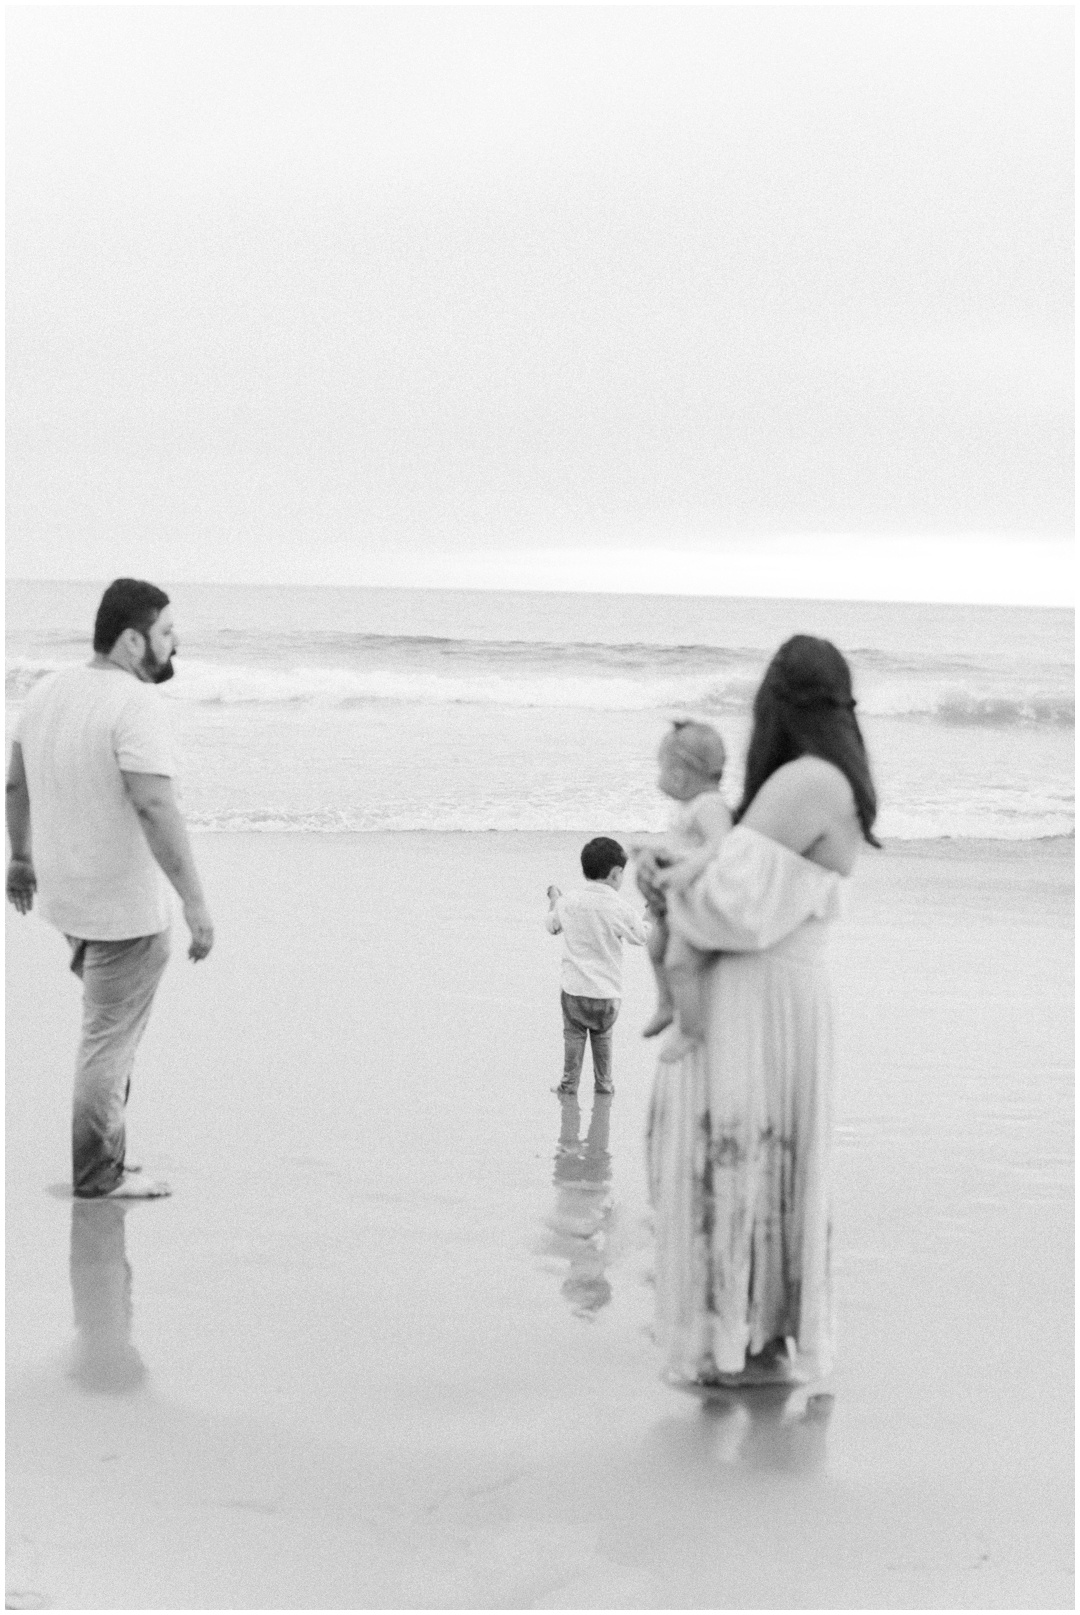 Newport_Beach_Newborn_Light_Airy_Natural_Photographer_Newport_Beach_Photographer_Orange_County_Family_Photographer_Cori_Kleckner_Photography_Huntington_Beach_Photographer_Family_OC_Newborn_Natalie_Nunez_Thomas_Nunez_Natalie_Roca_Rosh_Nunez_Family_3567.jpg